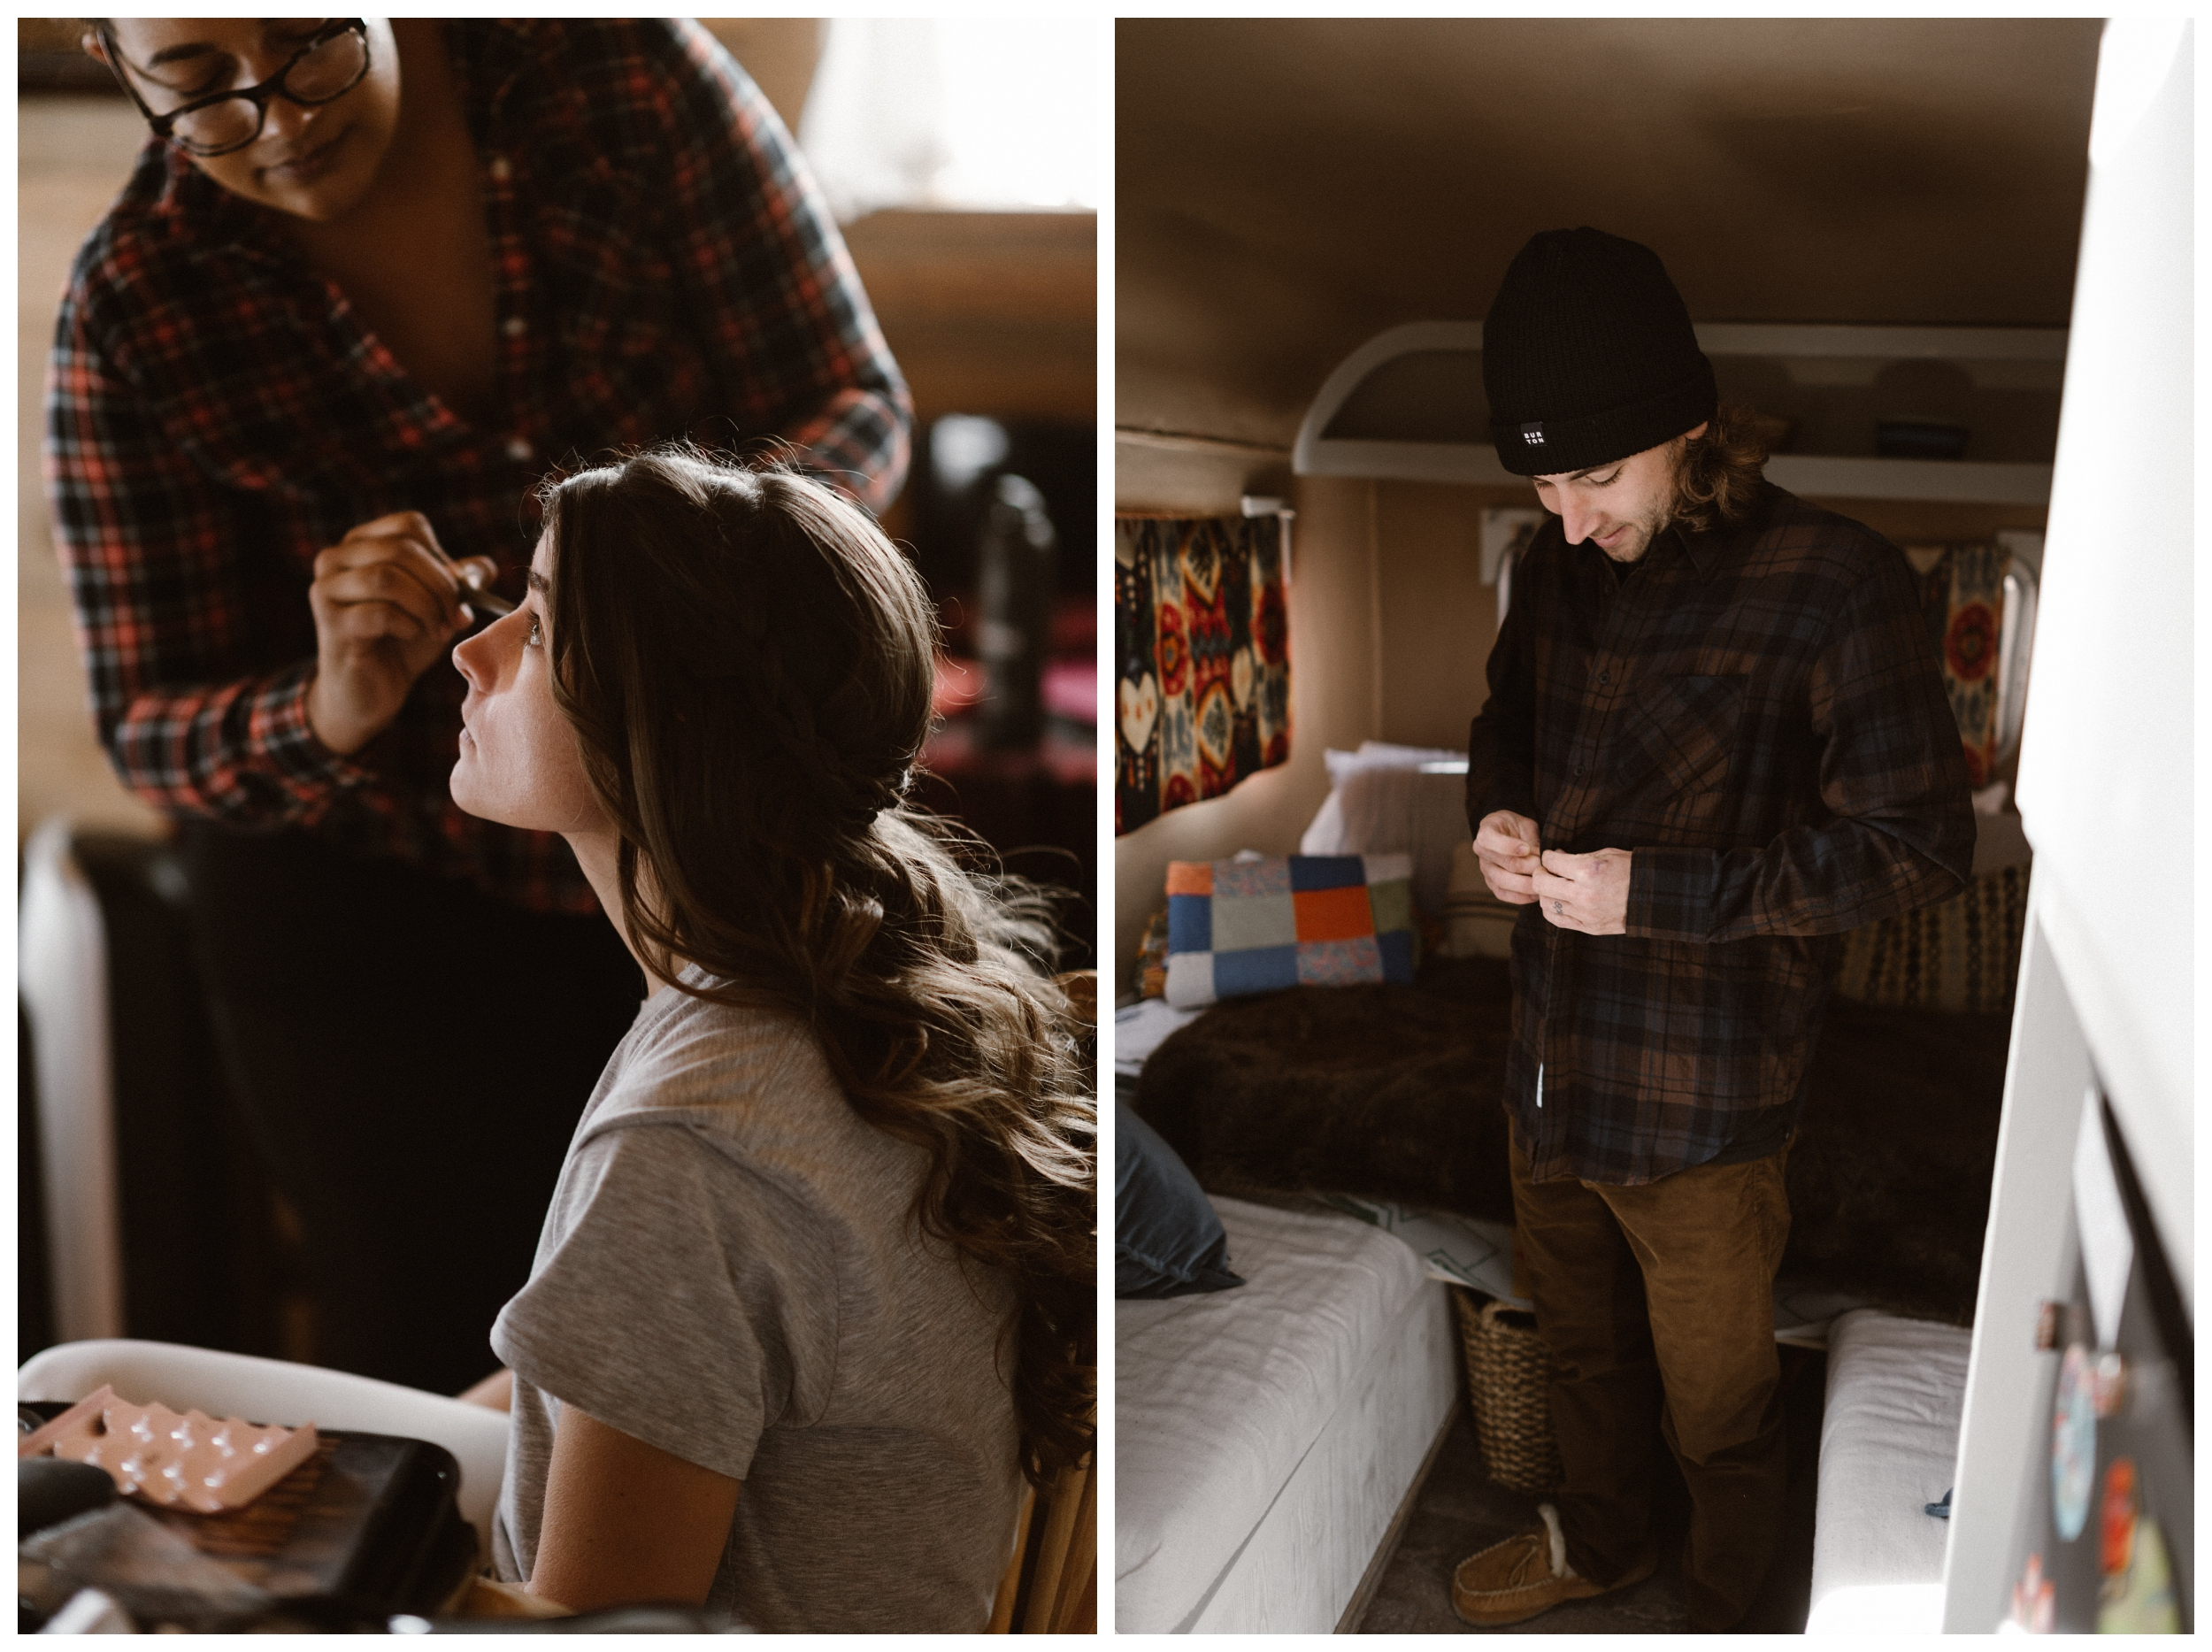 Olivia and Justin getting ready for their Great Sand Dunes National Park winter elopement in a cabin and refurbished trailer. Photo by Maddie Mae Photo, Adventures Instead.